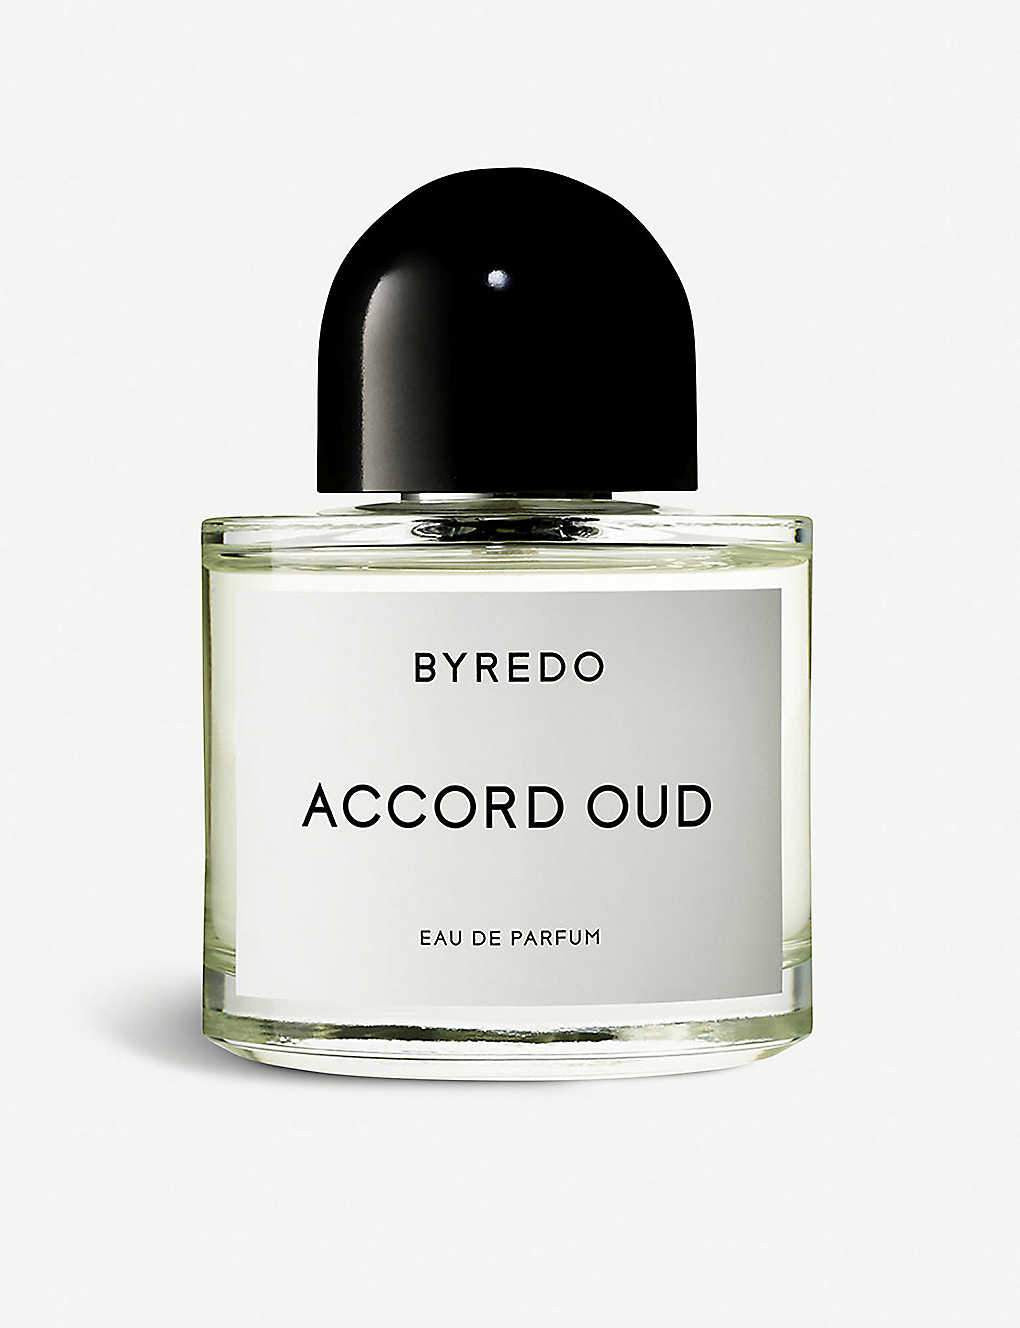 Accord Oud Eau de Parfum by Byredo